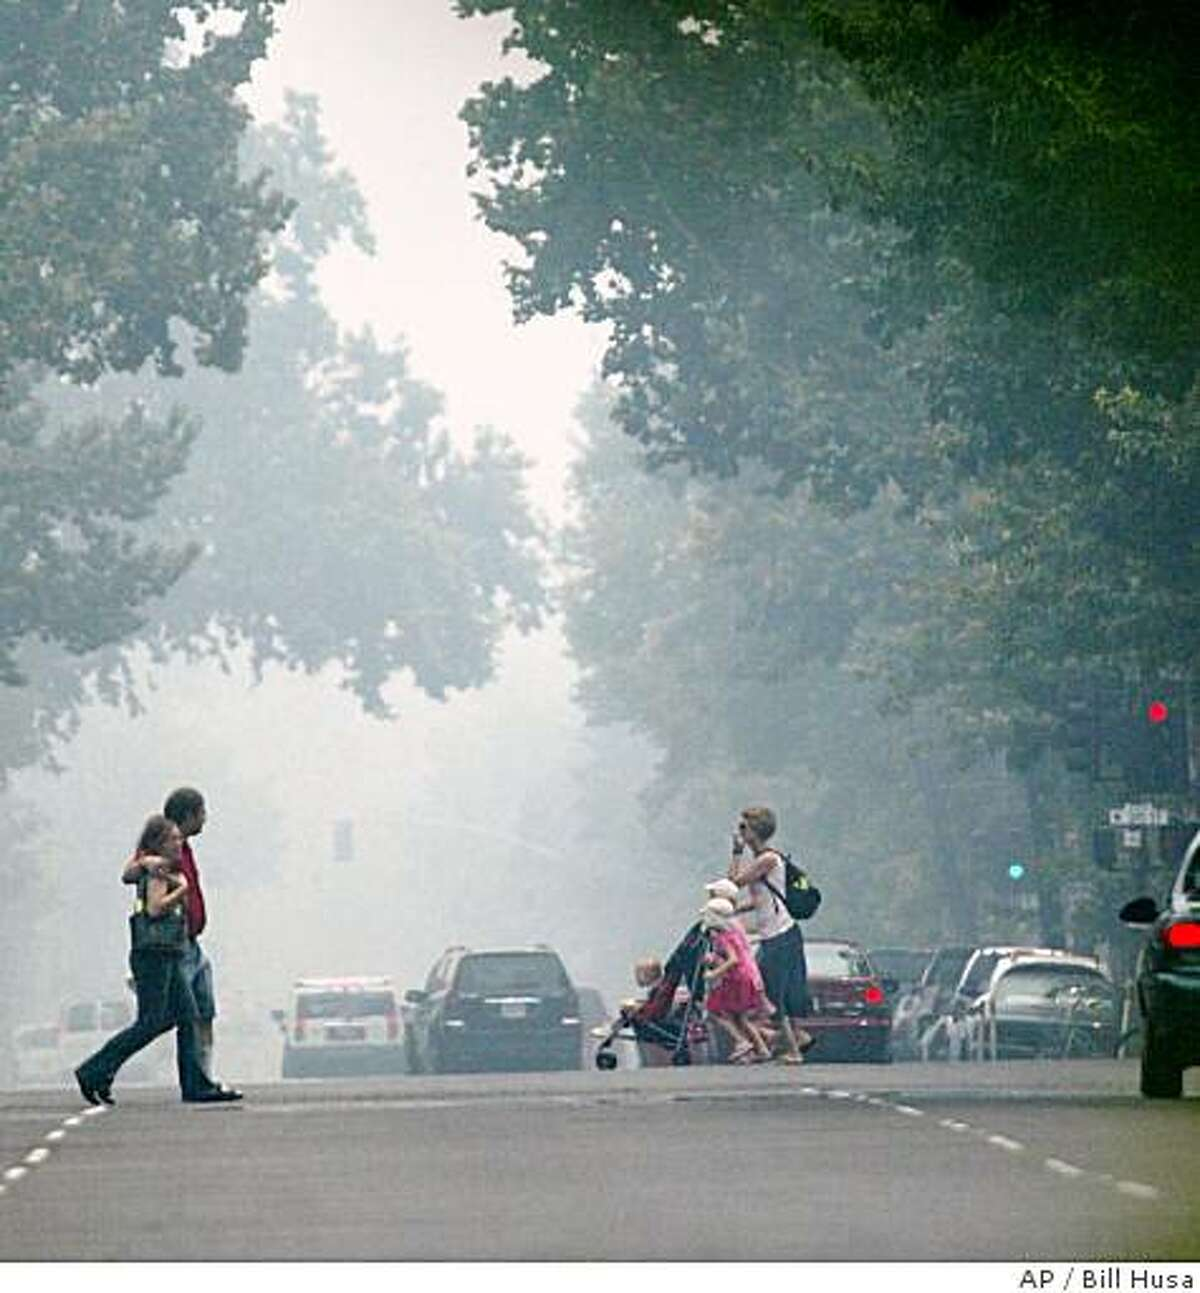 Smoke from nearby fires fills the air for those walking around in Downtown Chico Tuesday June 24, 2008. In less than a day, an electrical storm unleashed nearly 8,000 lightning strikes that set more than 800 wildfires across Northern California _ a rare example of